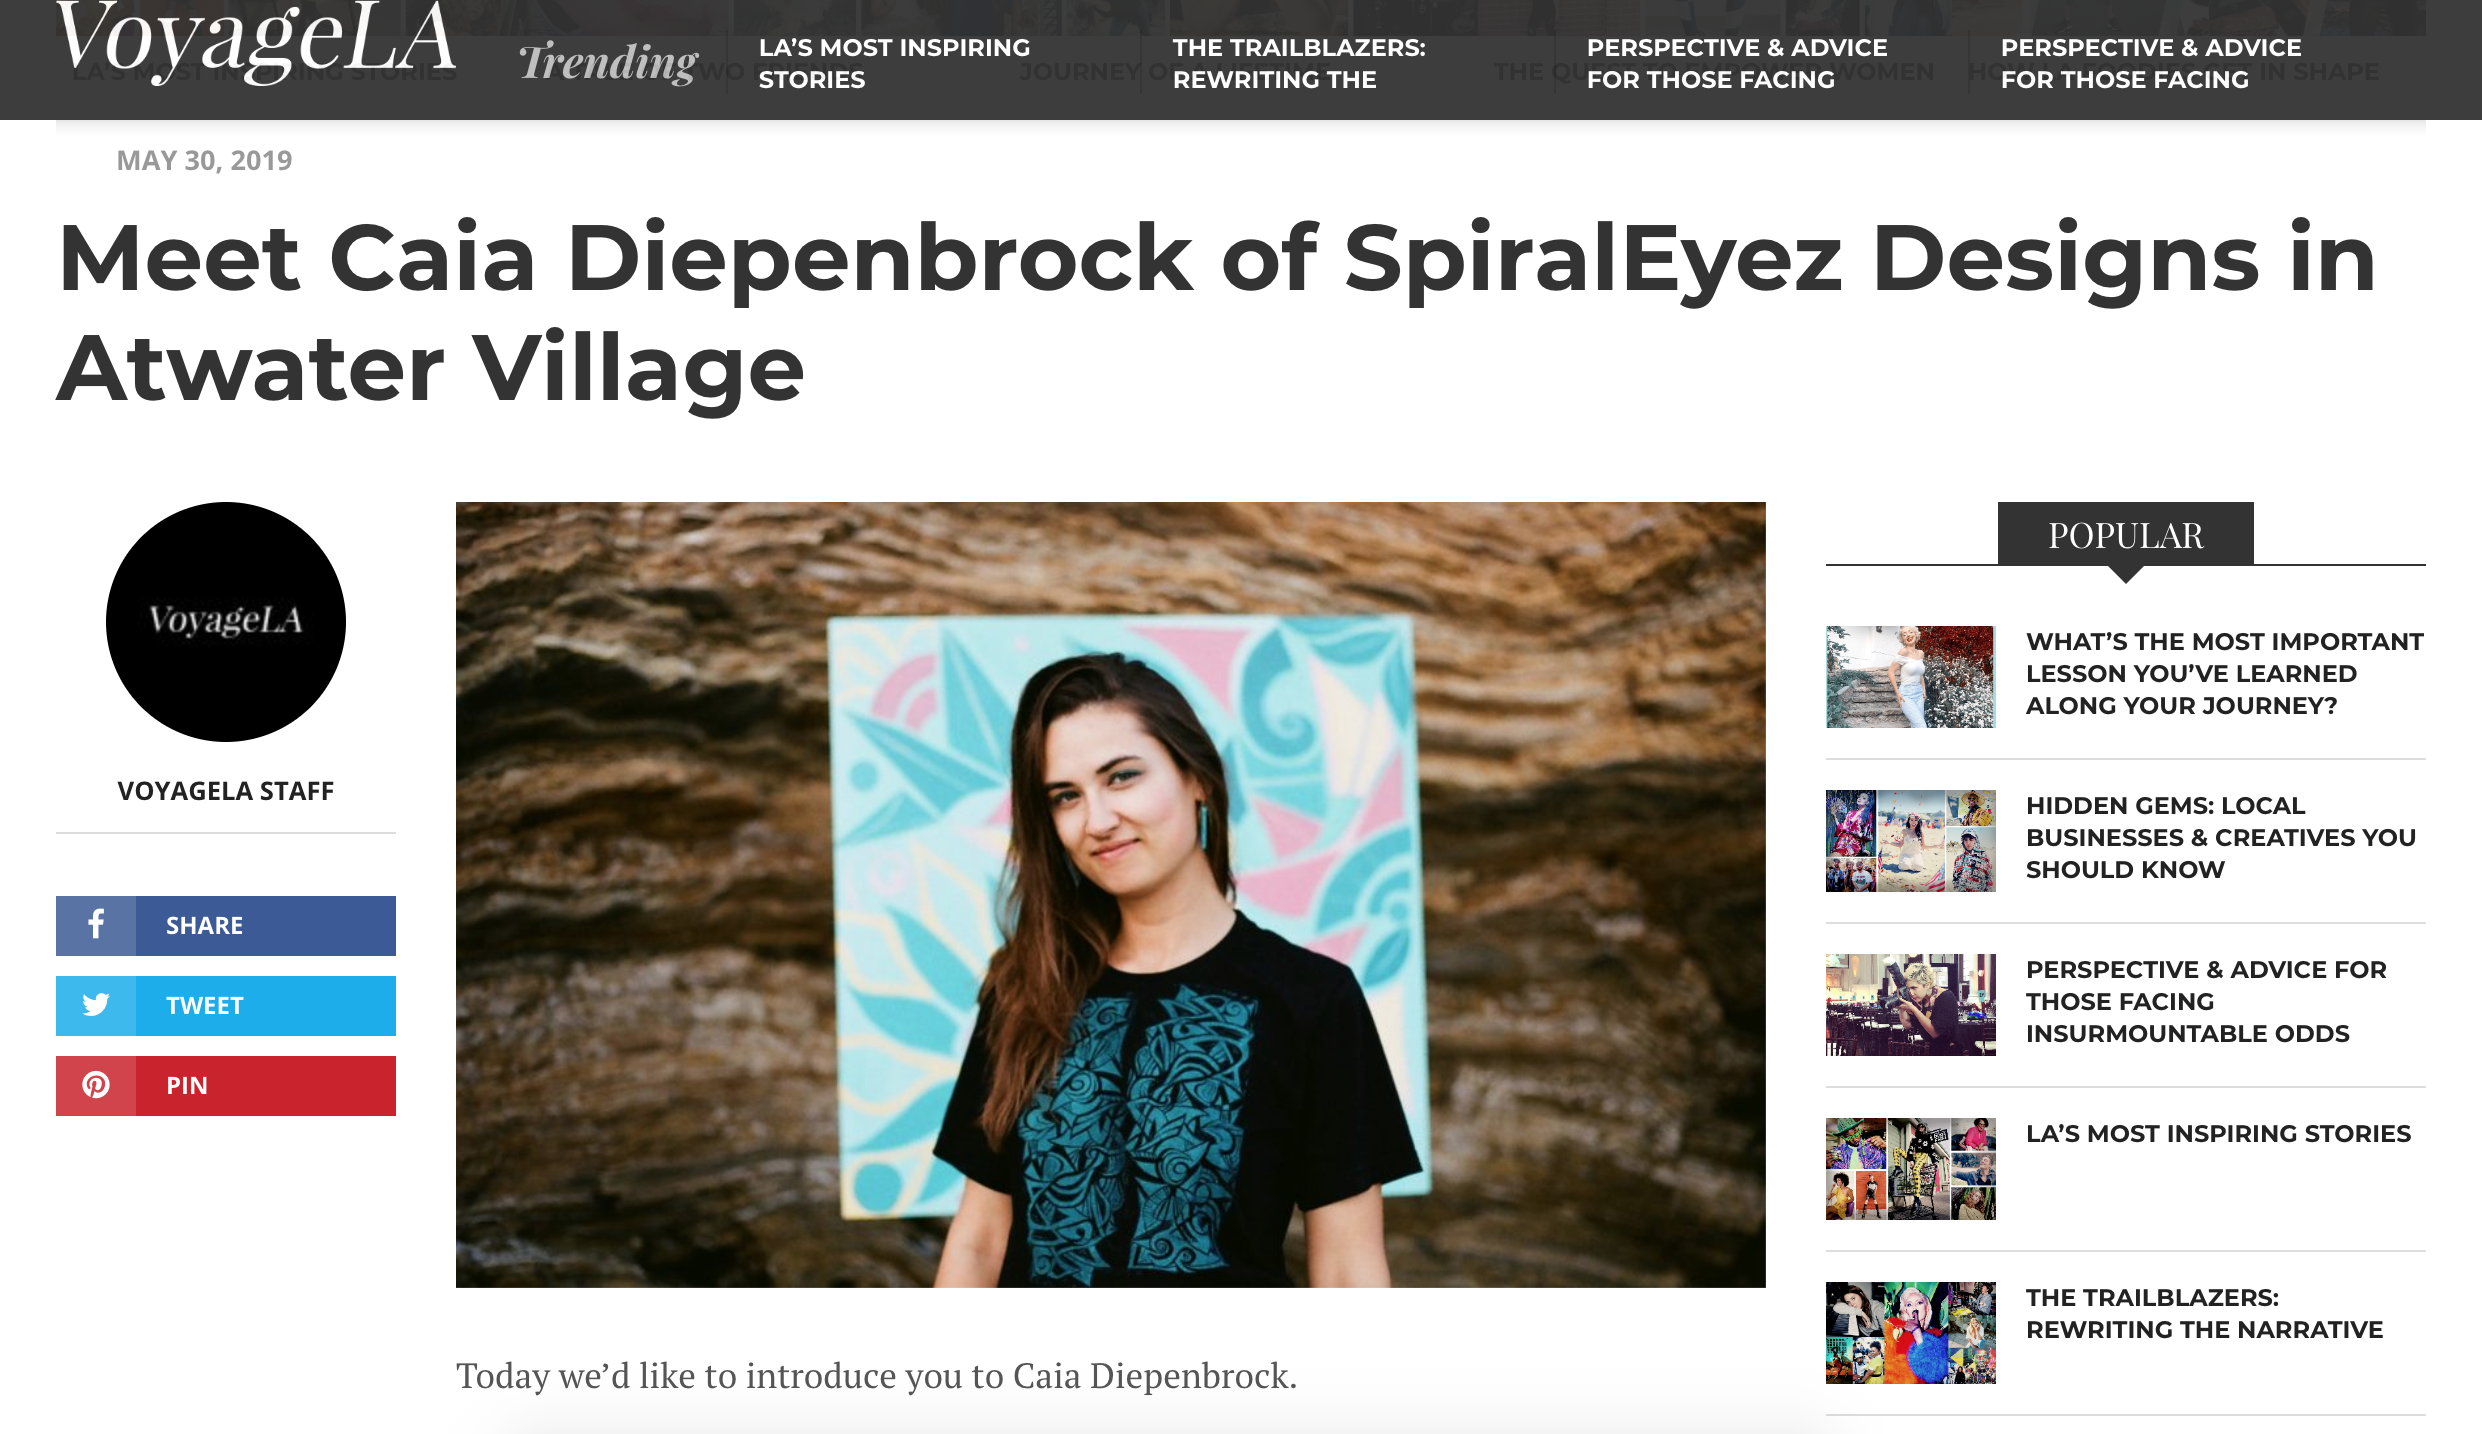 LINK TO ARTICLE:  http://voyagela.com/interview/meet-caia-diepenbrock-spiraleyez-designs/